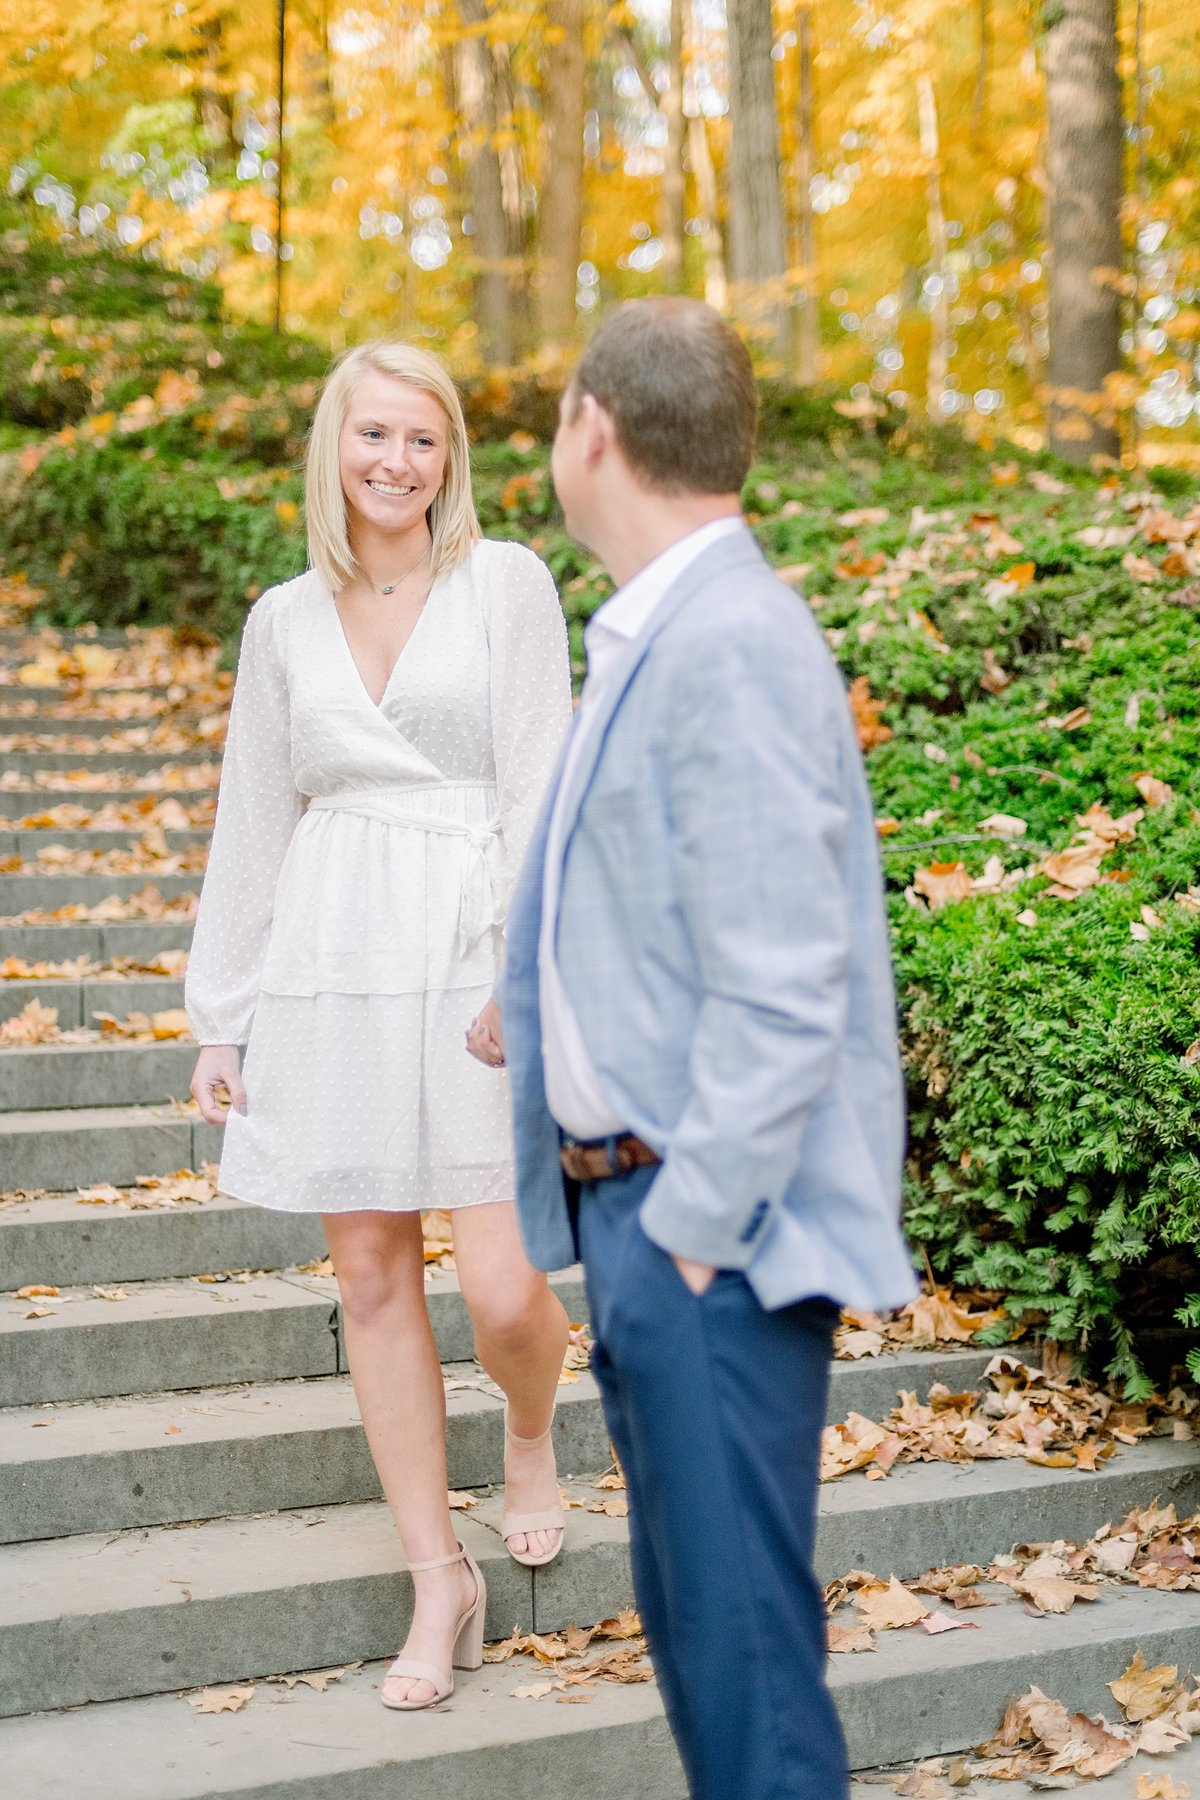 Holcomb Gardens Engagement Session Indianapolis, Indiana Wedding Photographer Alison Mae Photography_3196